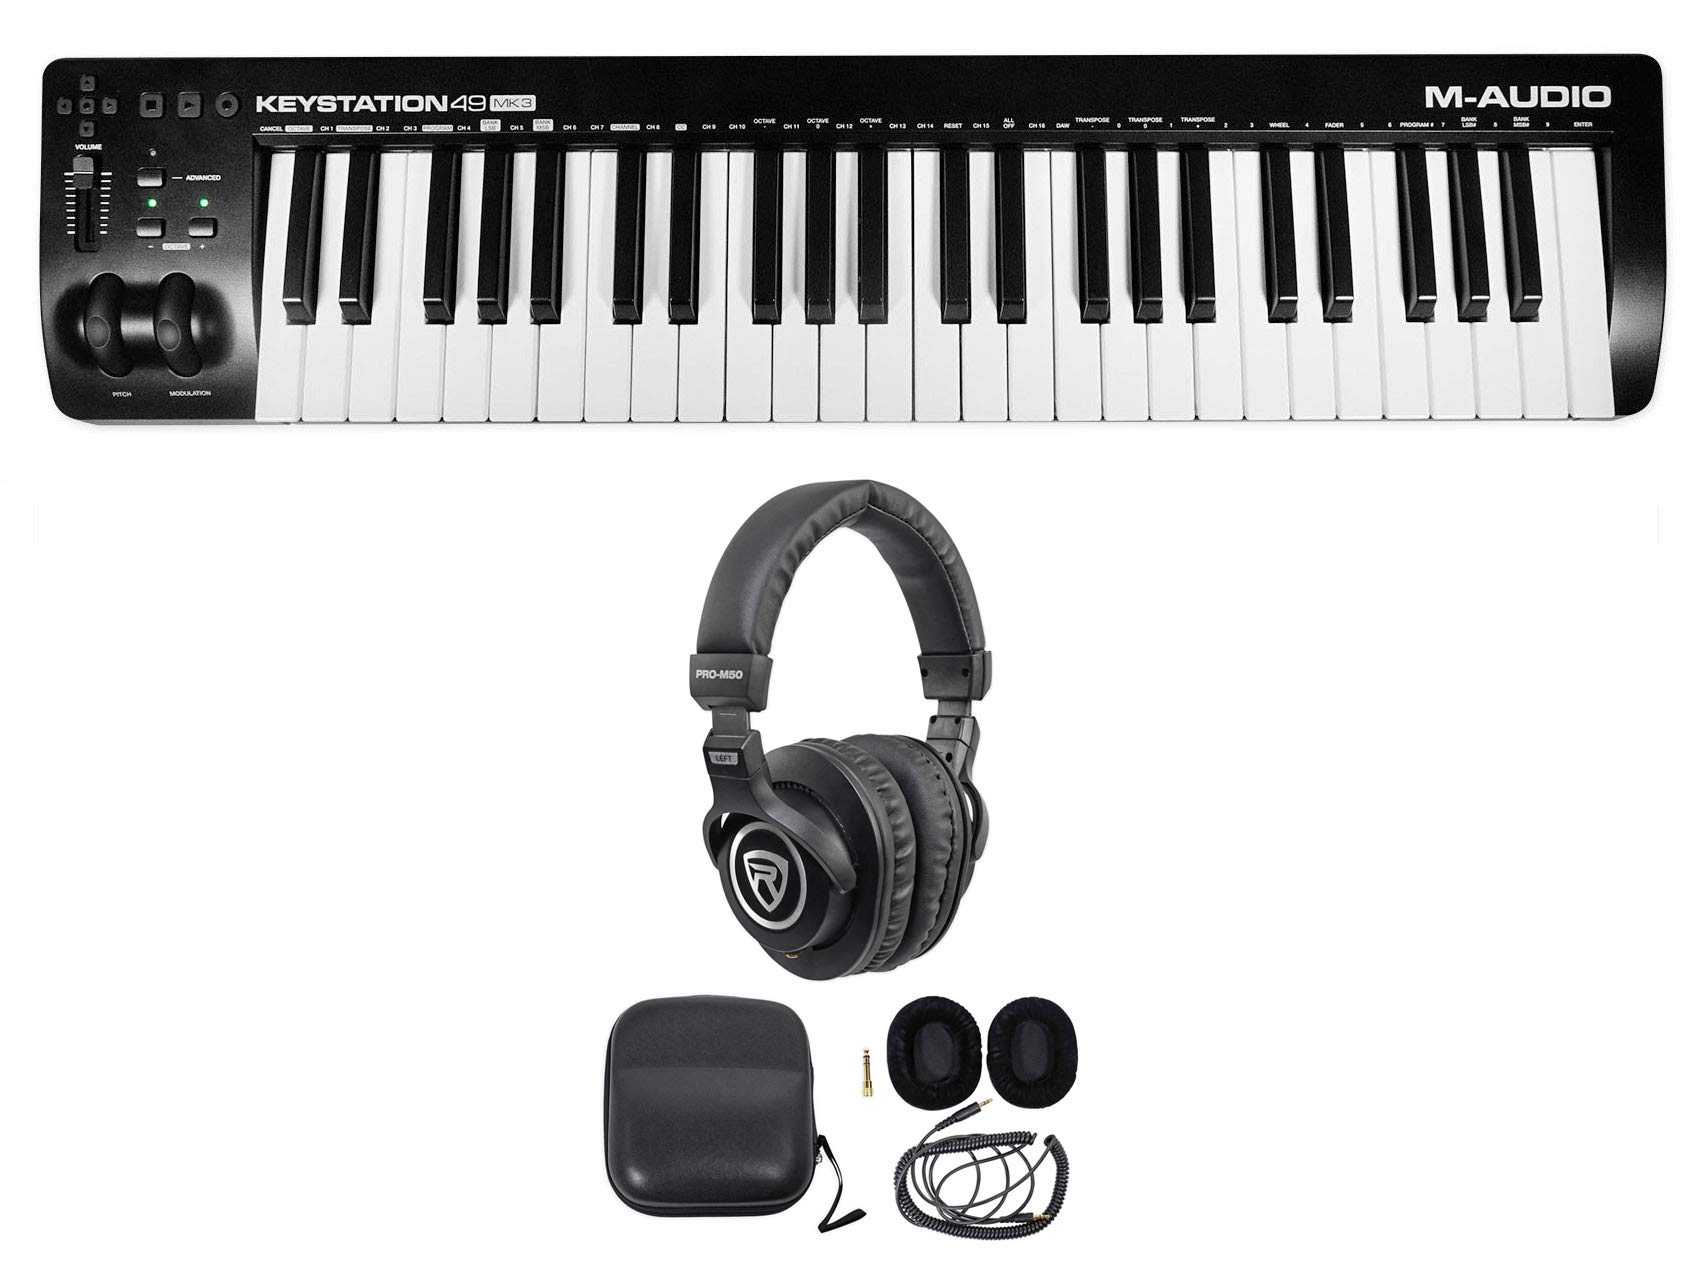 M-Audio Keystation 49 III 49-Key USB MIDI Keyboard Controller MK3 + Headphones